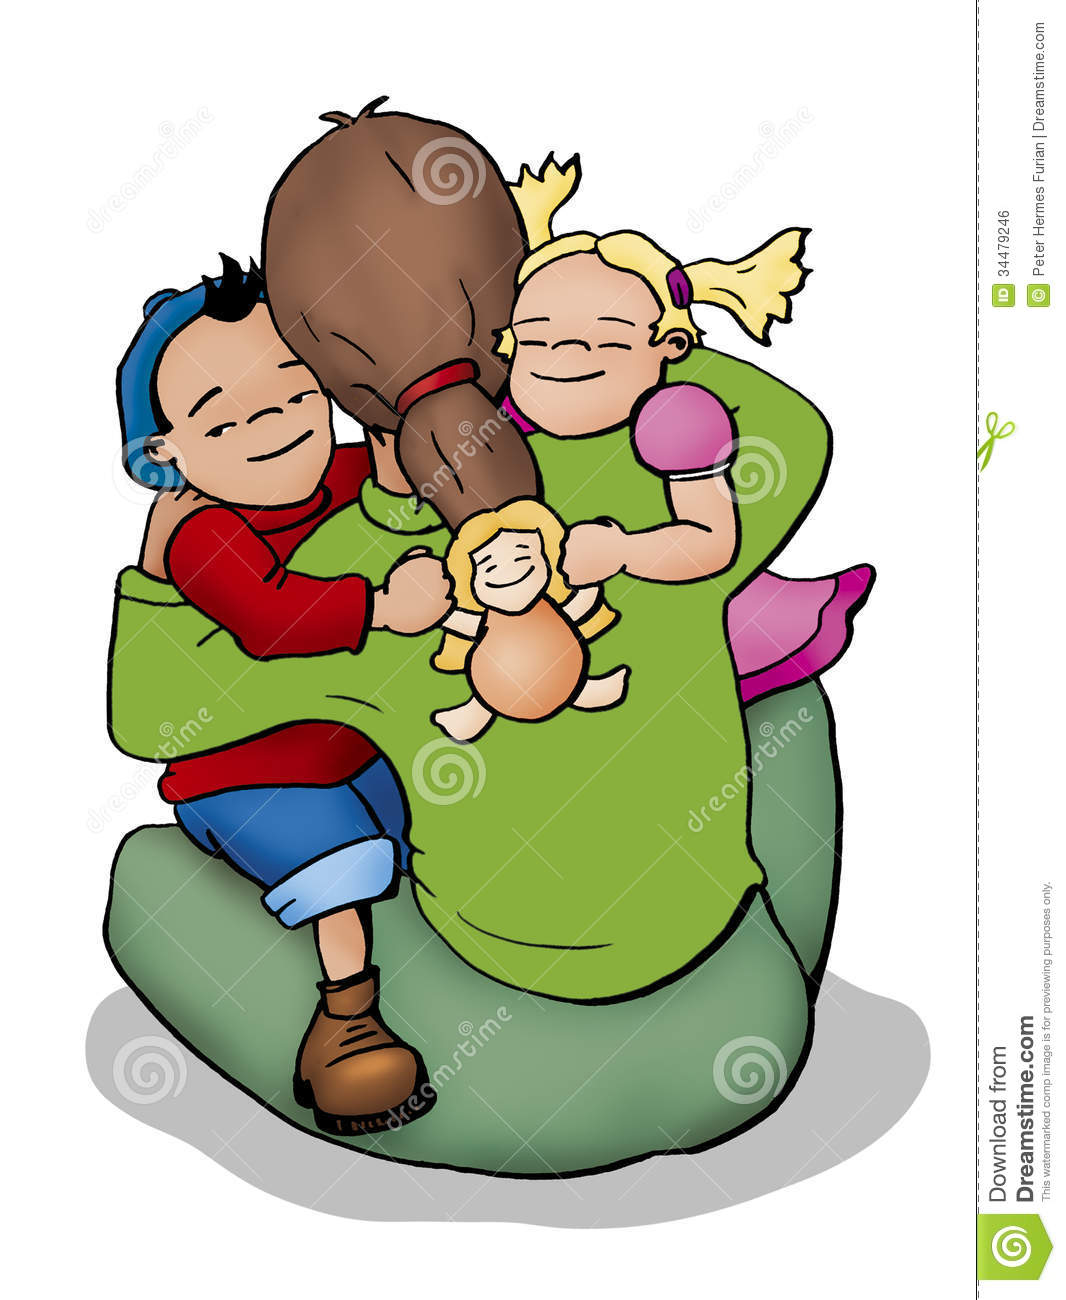 Girl Hugging Dog Clipart - Clipart Kid jpg library download